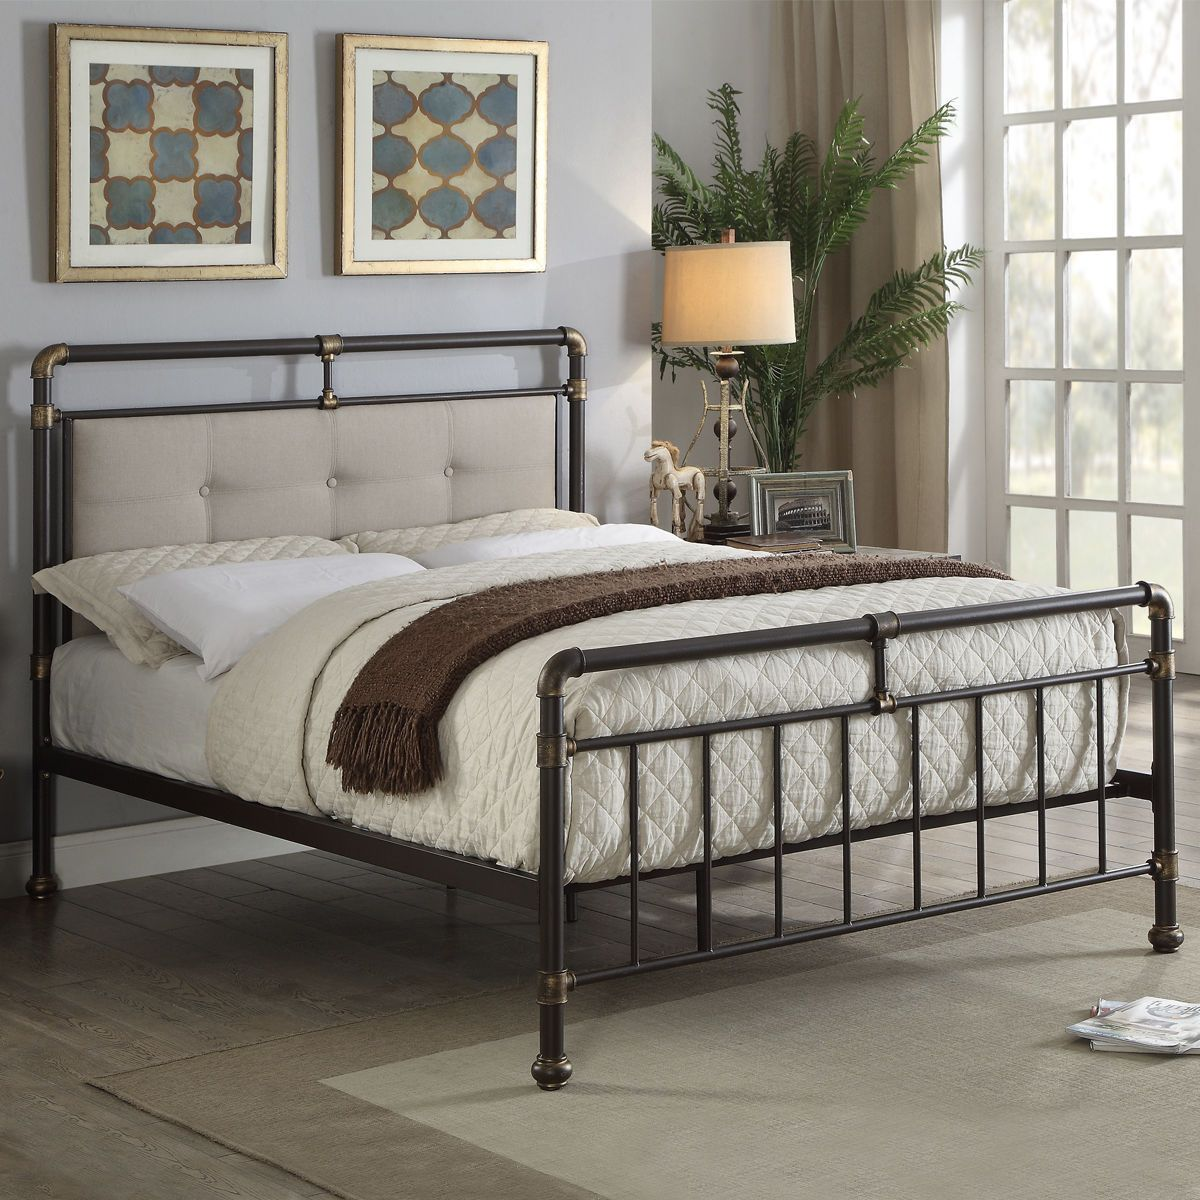 Details about Vintage Industrial Scaffold Style Metal Bed